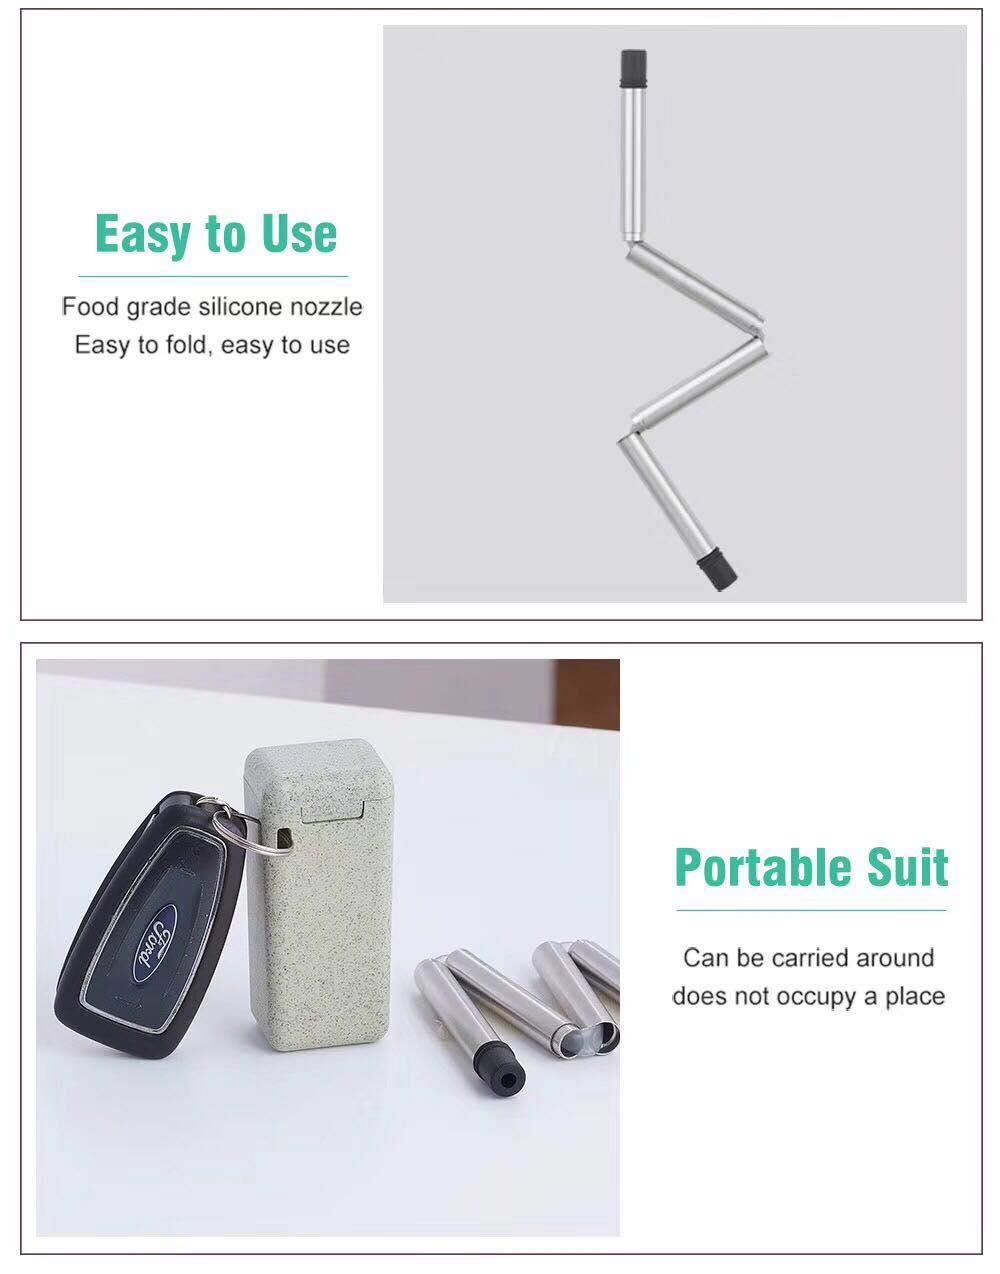 Foldable Straw Stainless Steel BPA Free Food-Grade Straws with Hard Case Babiken 3 Packs Collapsible Reusable Metal Straw